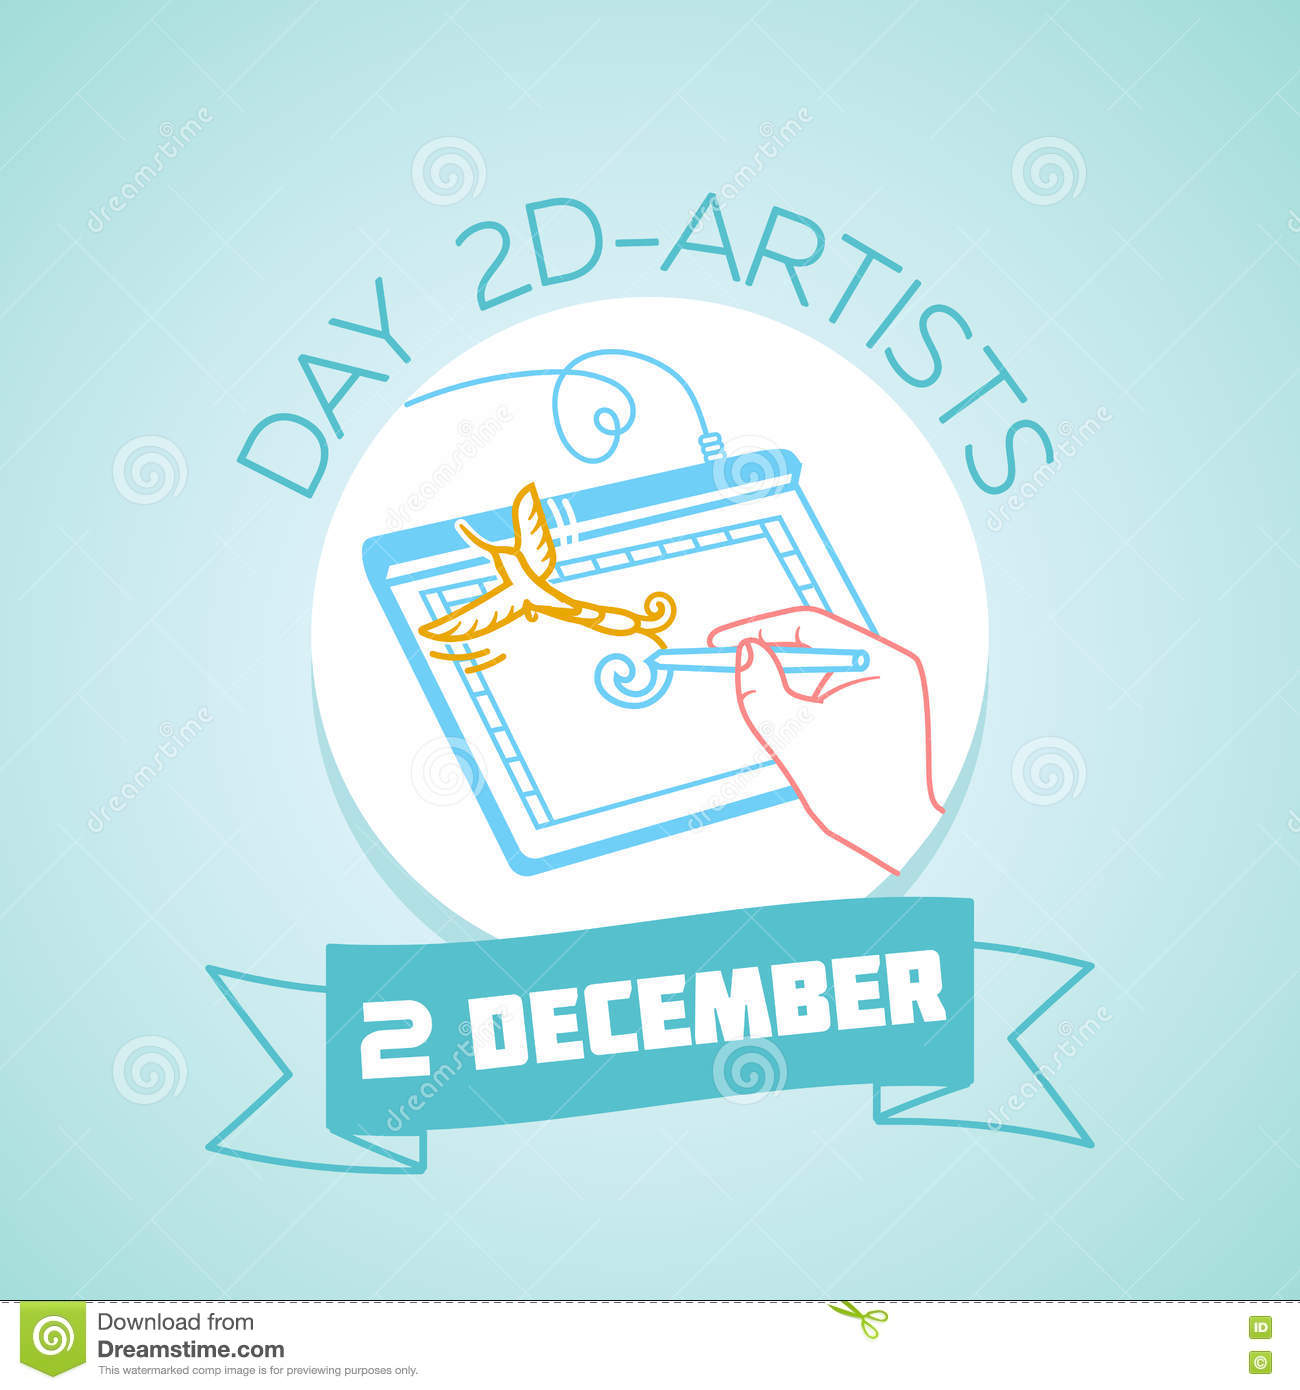 December Calendar Art : December day d artists stock illustration illustration of